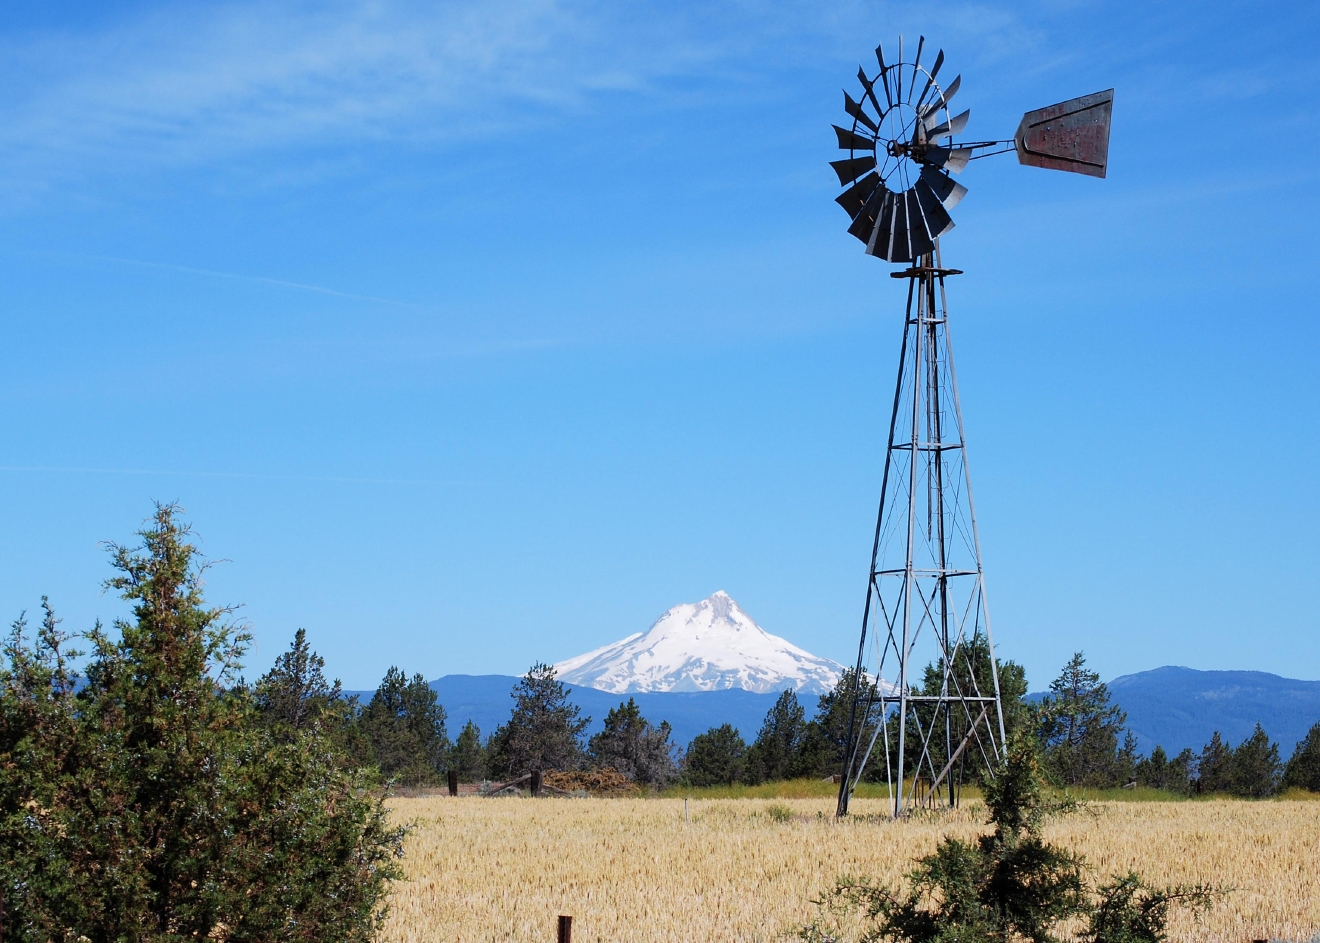 View of Mount Hood from Maupin (Karen Forrest/CC by 2.0)